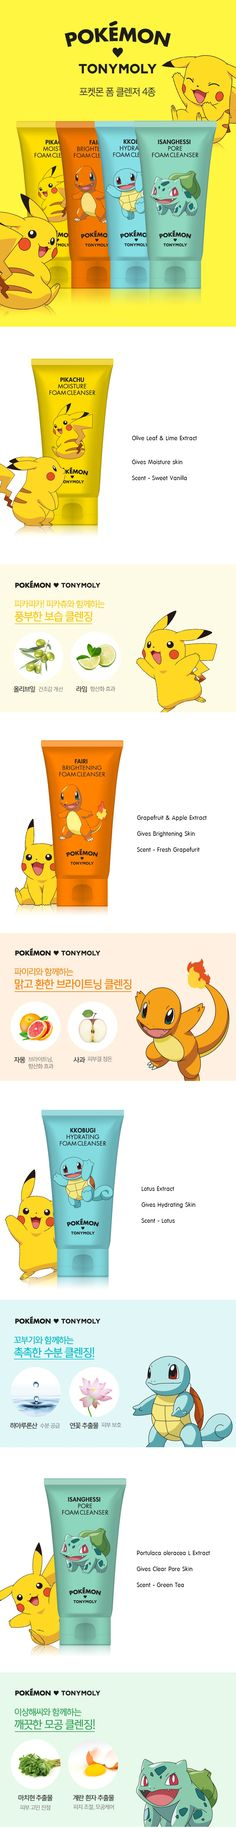 TONYMOLY x Pokemon Foam Cleanser Features   #PIKACHU: Vanilla Scent (contains olive leaf and lime extract) #FAIRI : Grapefruit Scent (contains grapefruit and apple extract) #KKOBUGI